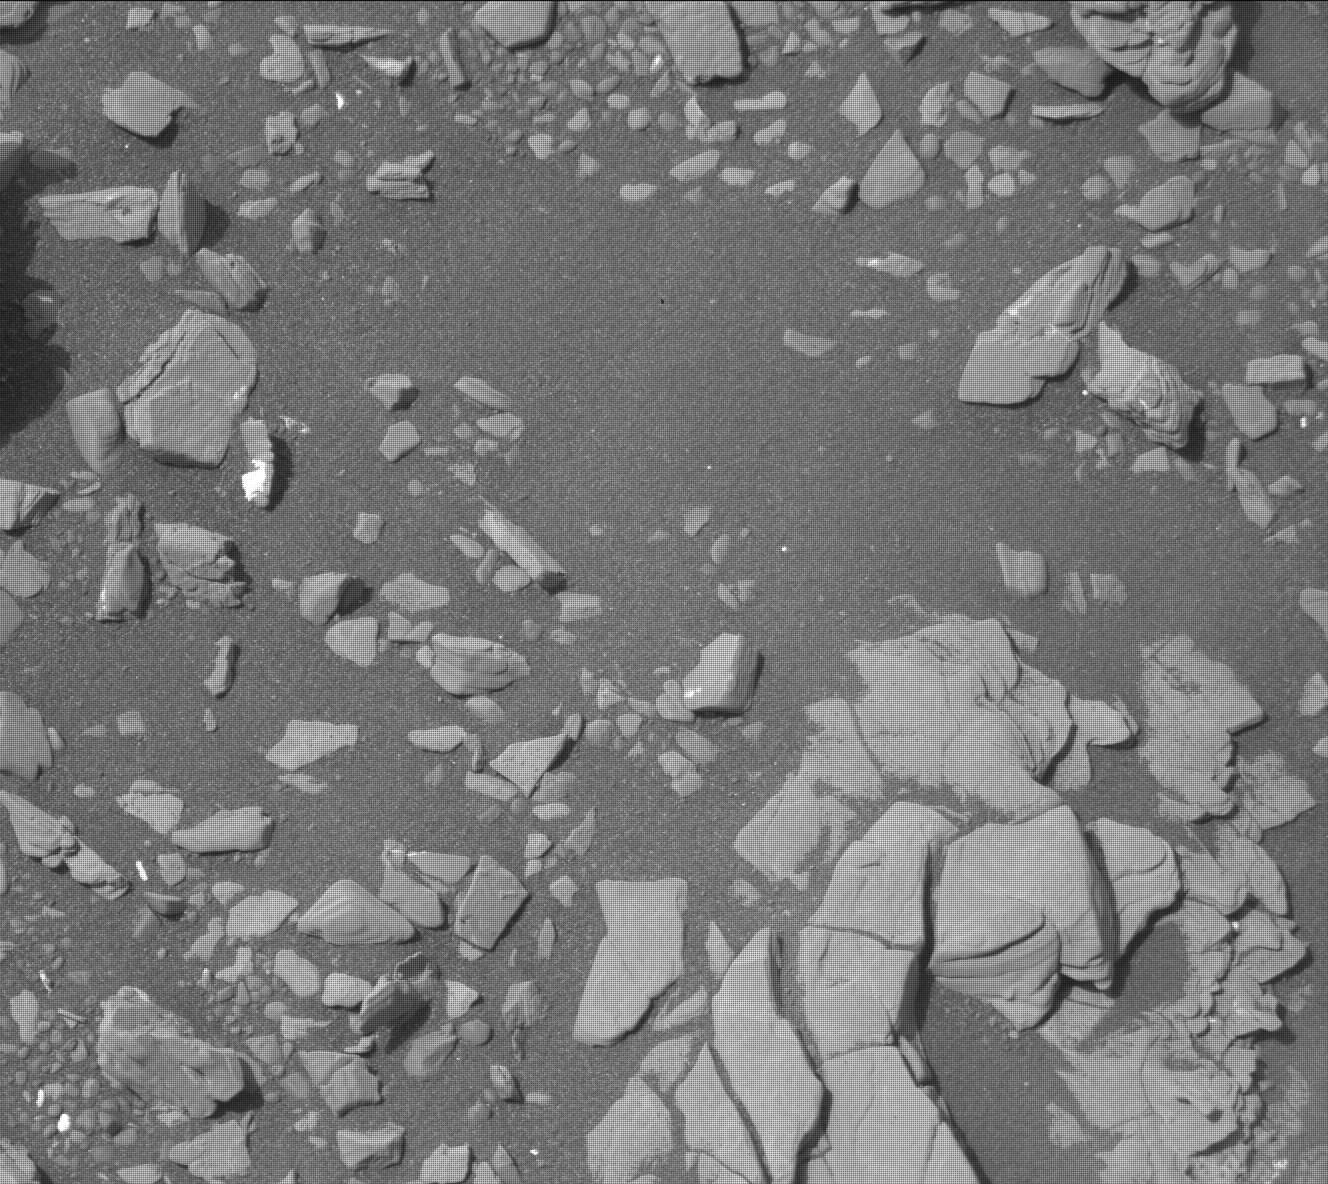 Nasa's Mars rover Curiosity acquired this image using its Mast Camera (Mastcam) on Sol 2860, at drive 2176, site number 82